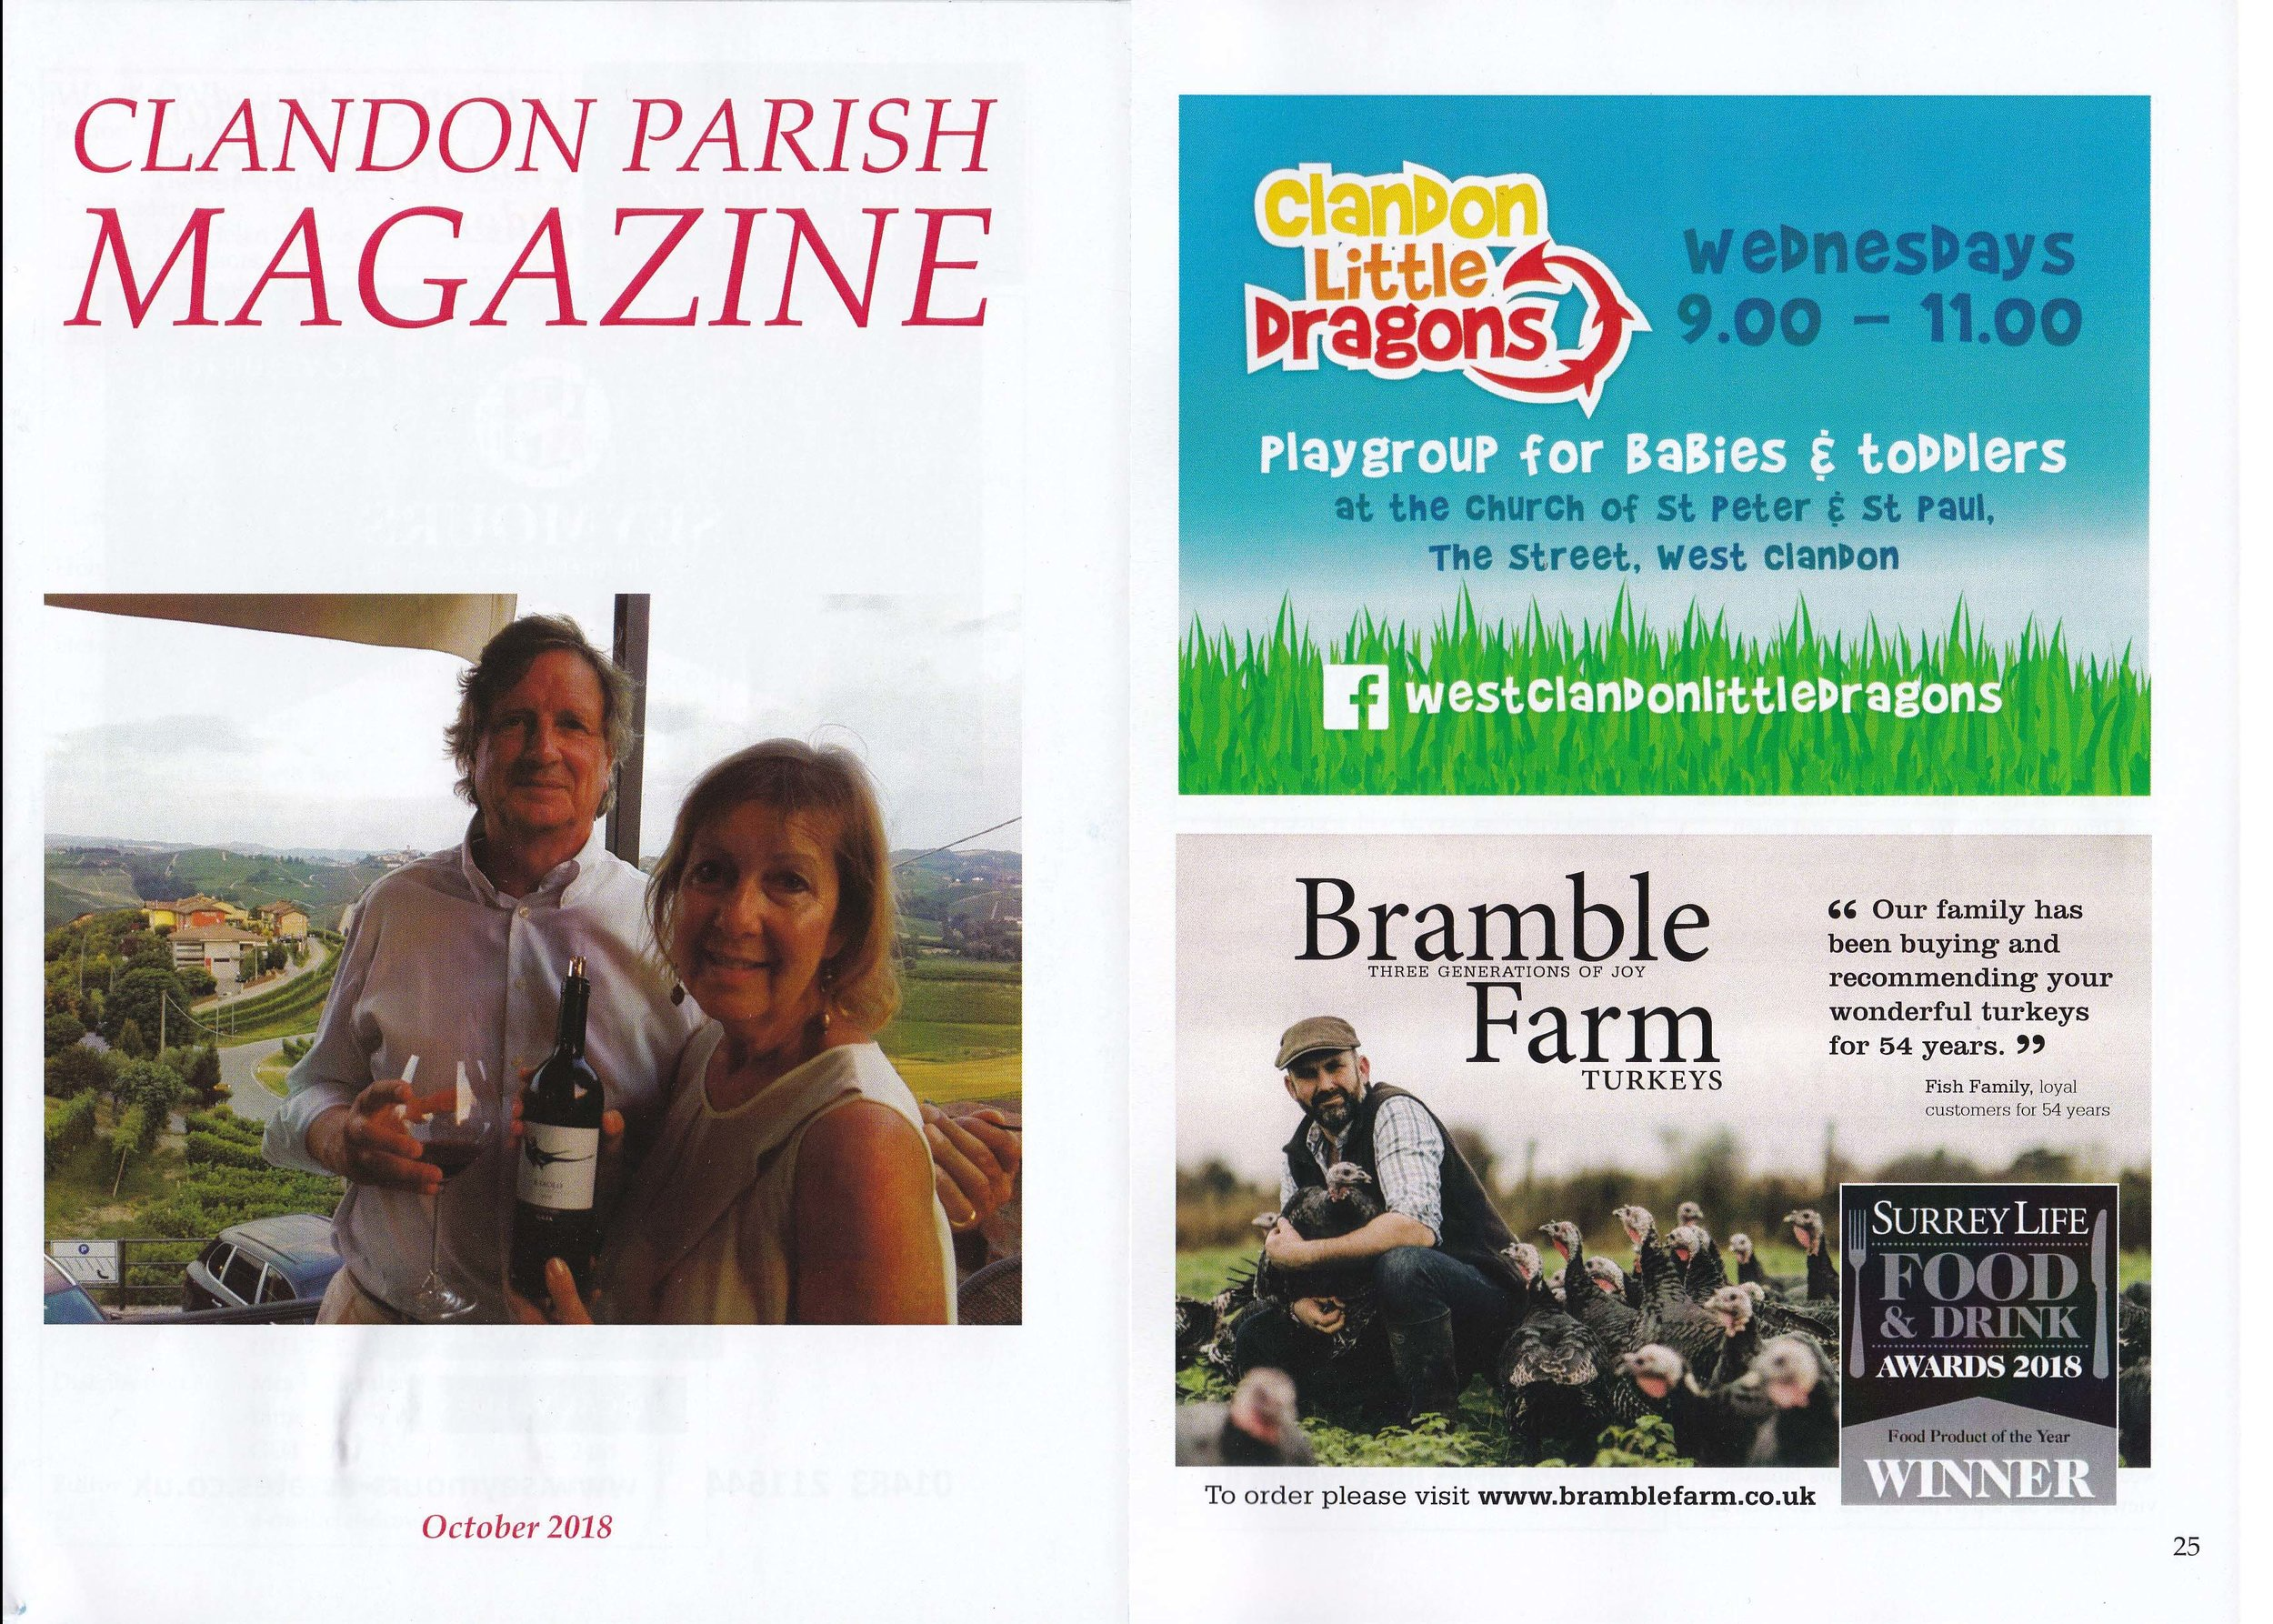 clandon parish cover ad and cover.jpg